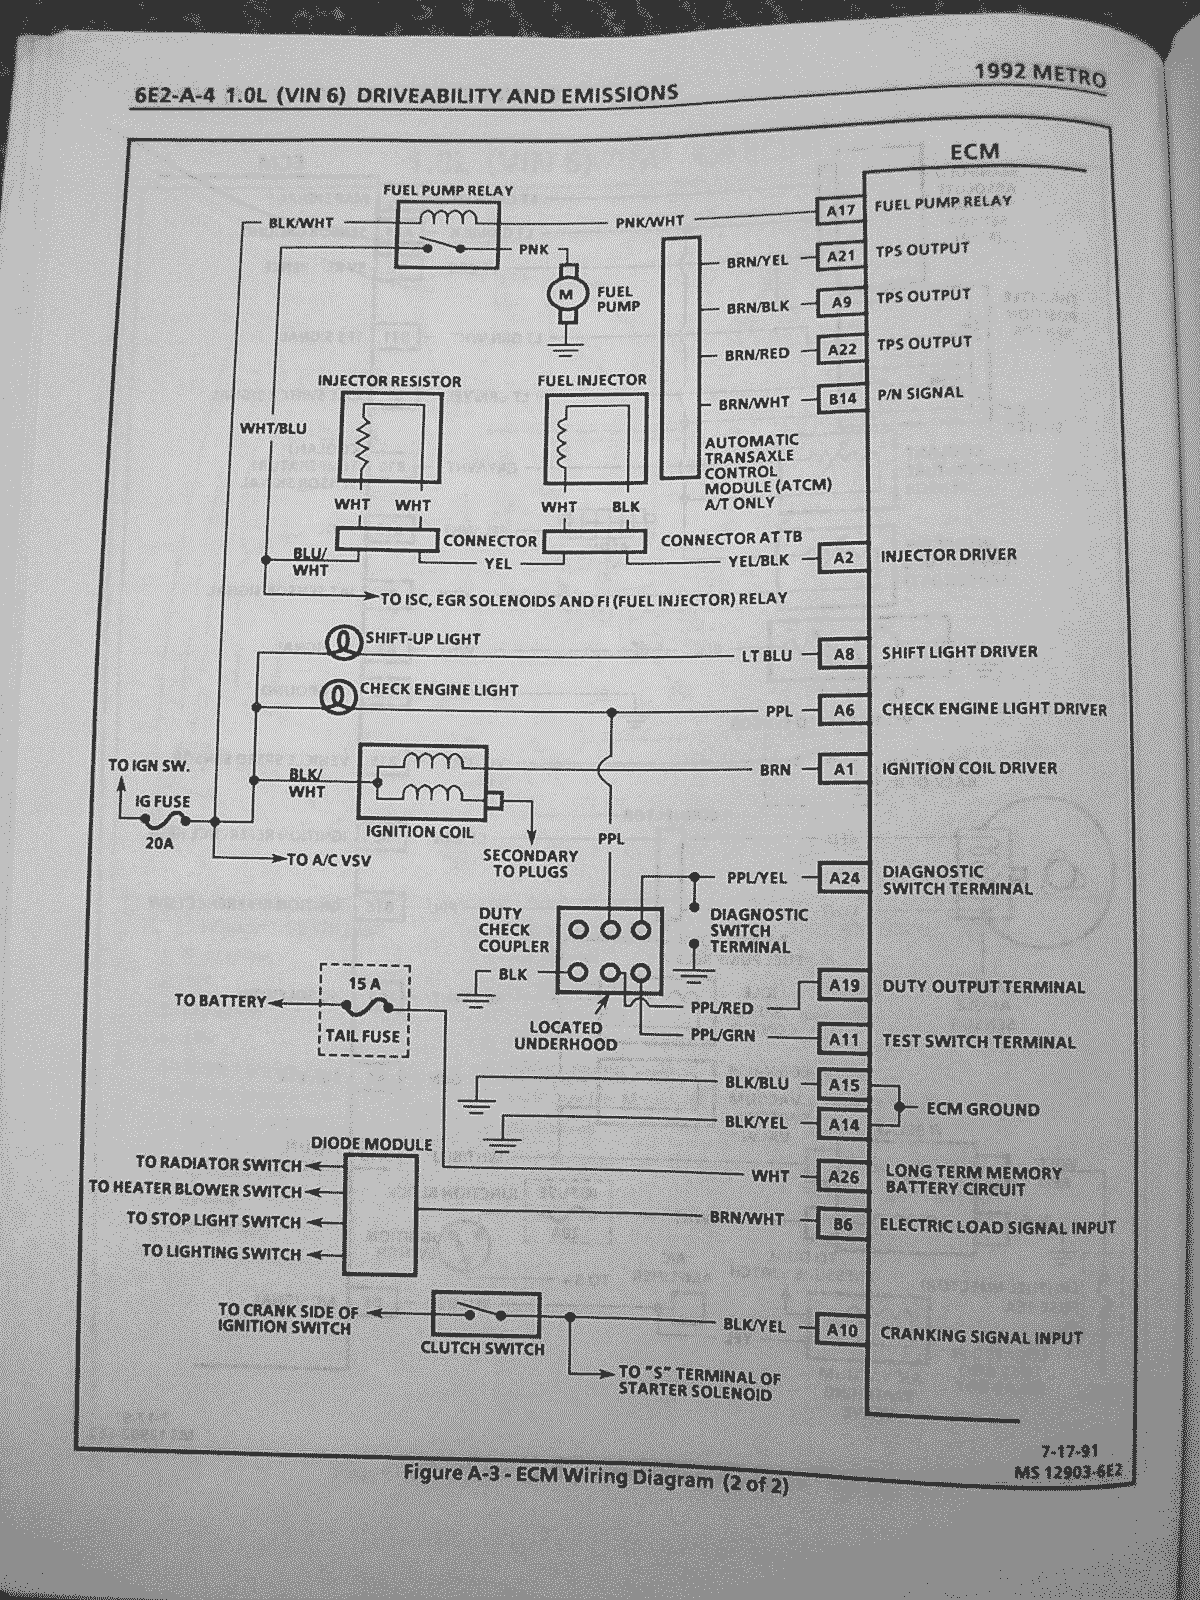 6e2 a 4 geo metro and suzuki swift wiring diagrams metroxfi com suzuki swift 2007 stereo wiring diagram at aneh.co